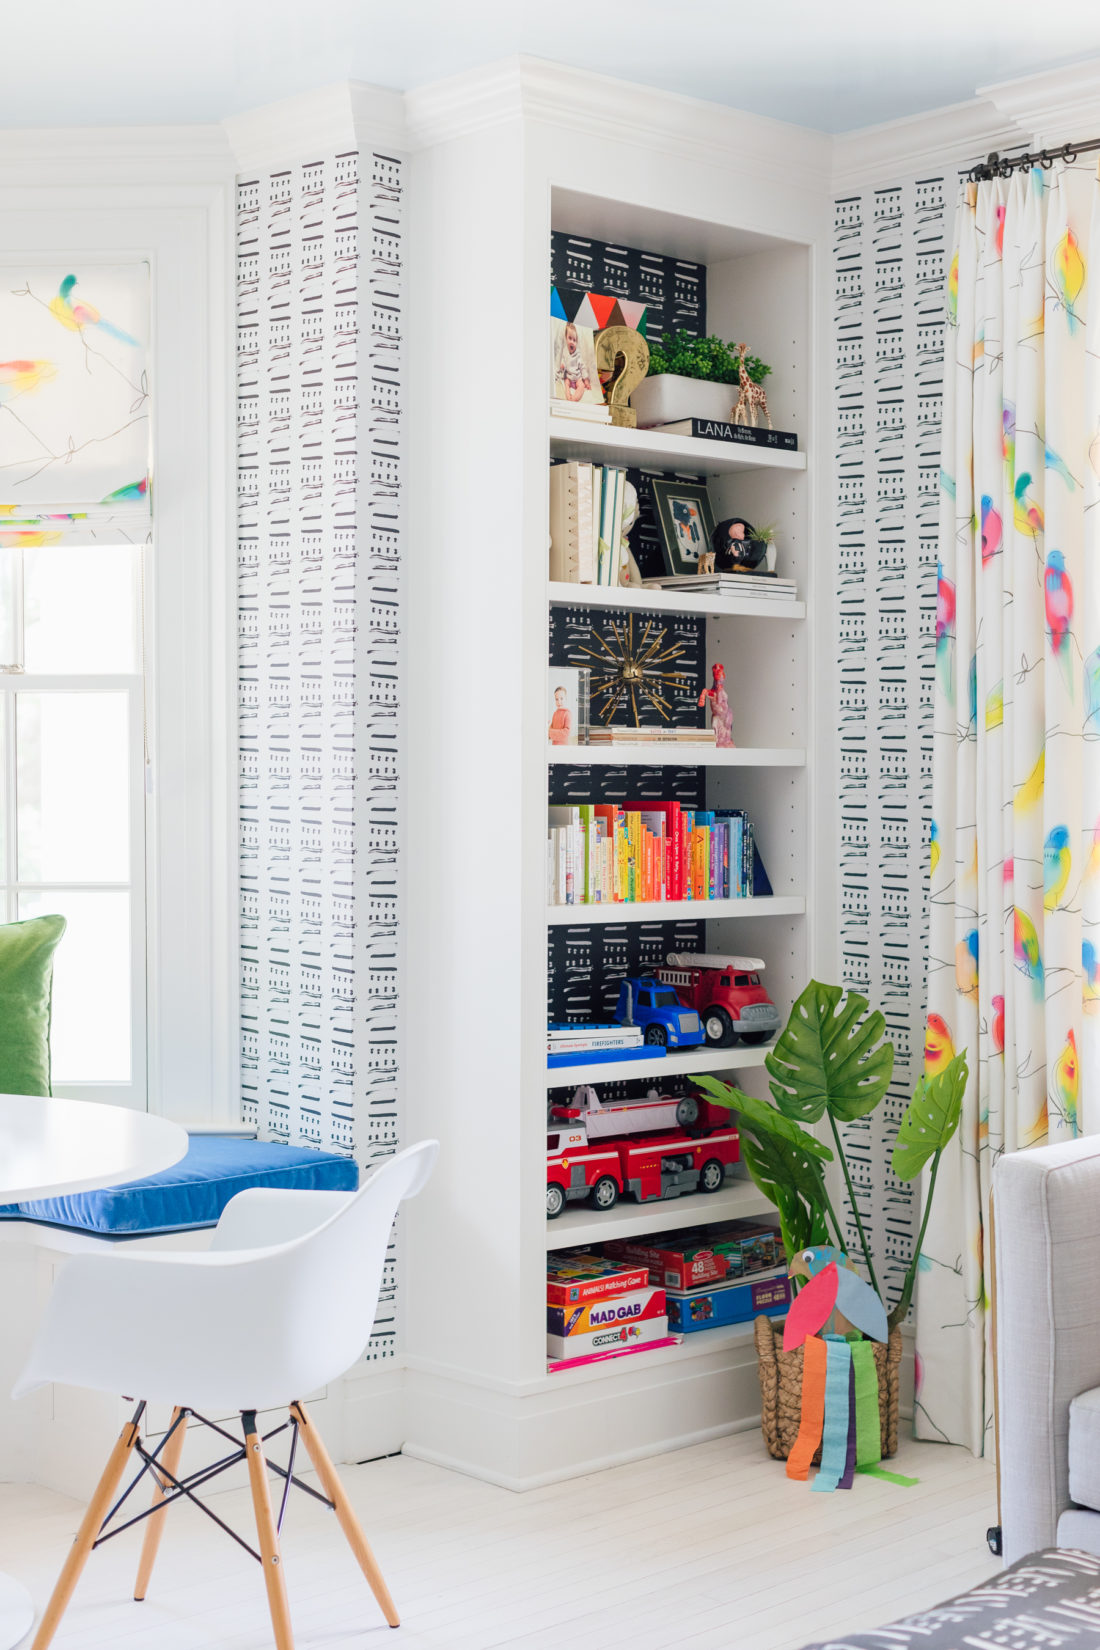 Eva Amurri Martino unveils the renovated playroom in her new Westport, CT home